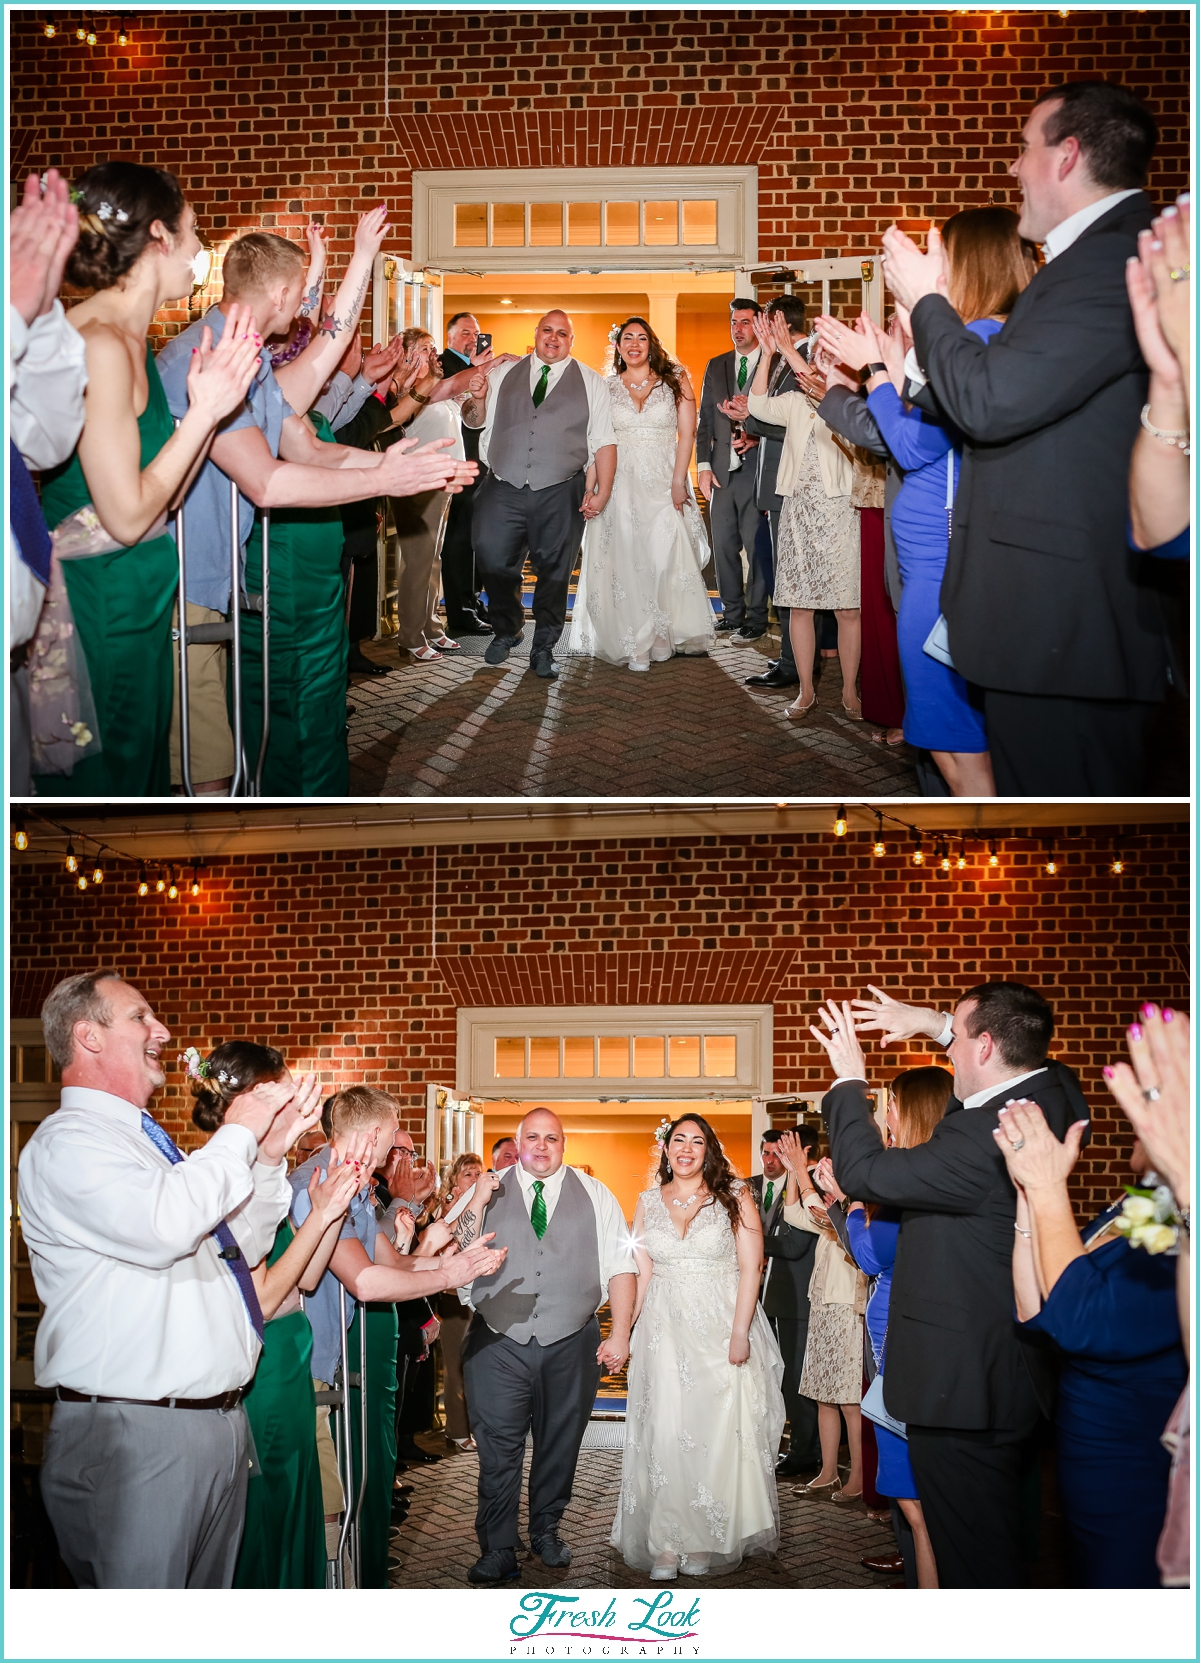 grand finale at wedding reception